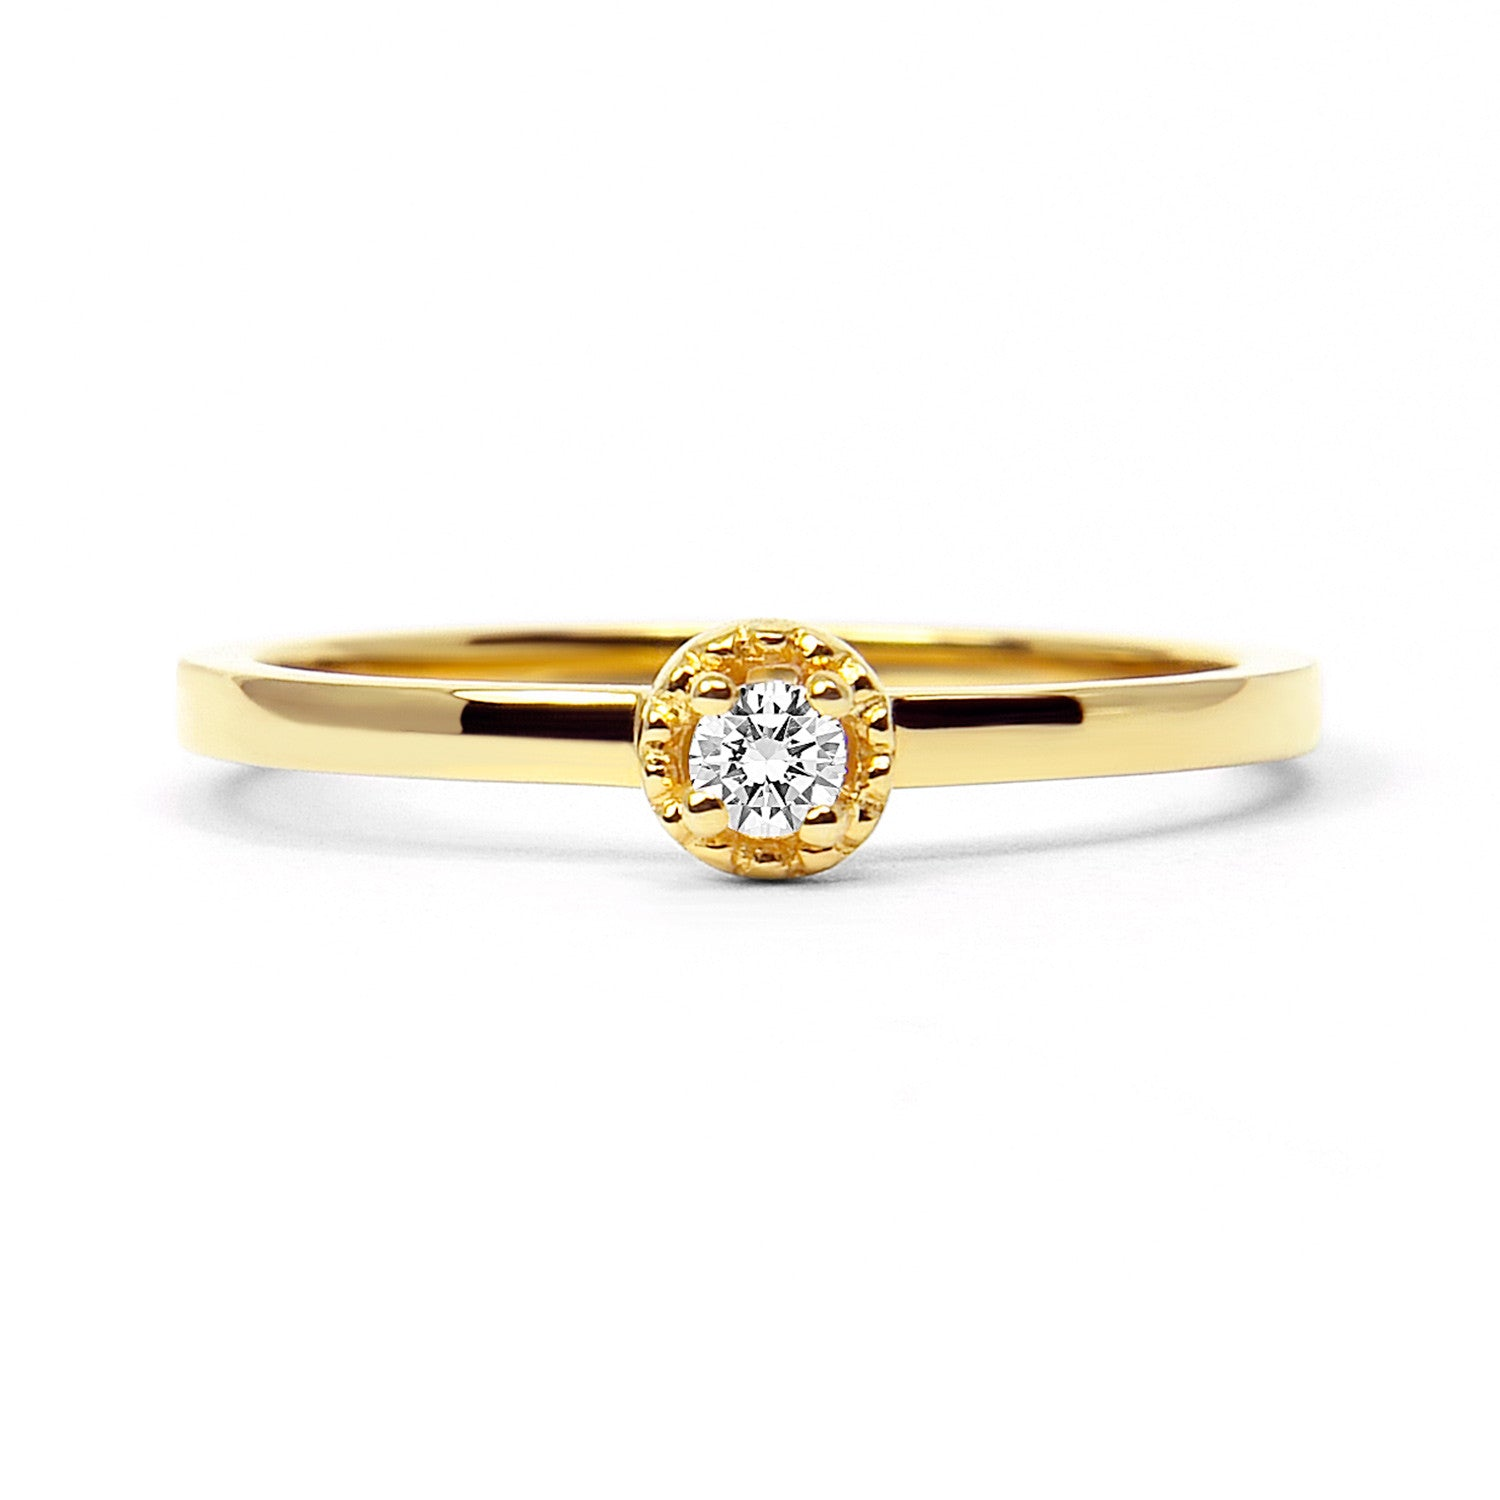 Serenity Ethical Diamond Engagement Ring, 18ct Fairtrade Gold